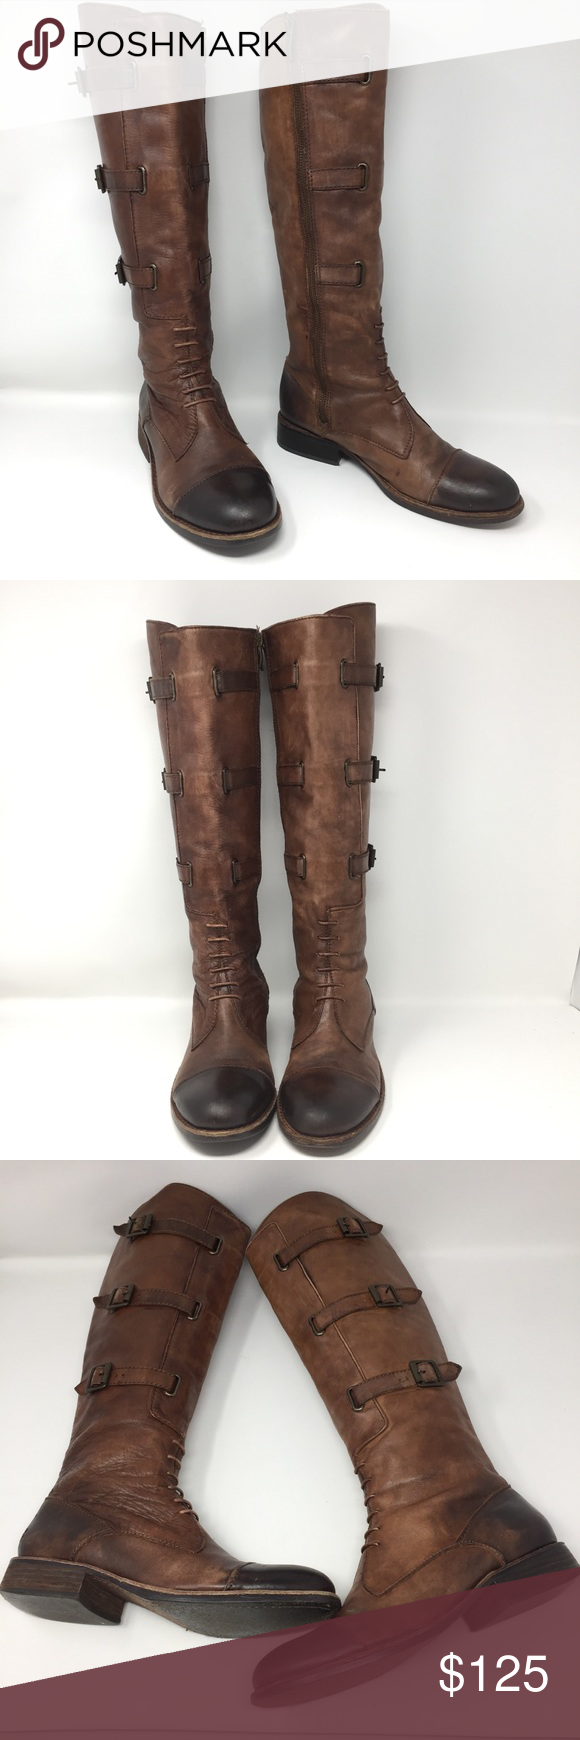 vintage vince camuto knee high boots sz 10 12 lined in gold leather gorgeous 4 heels